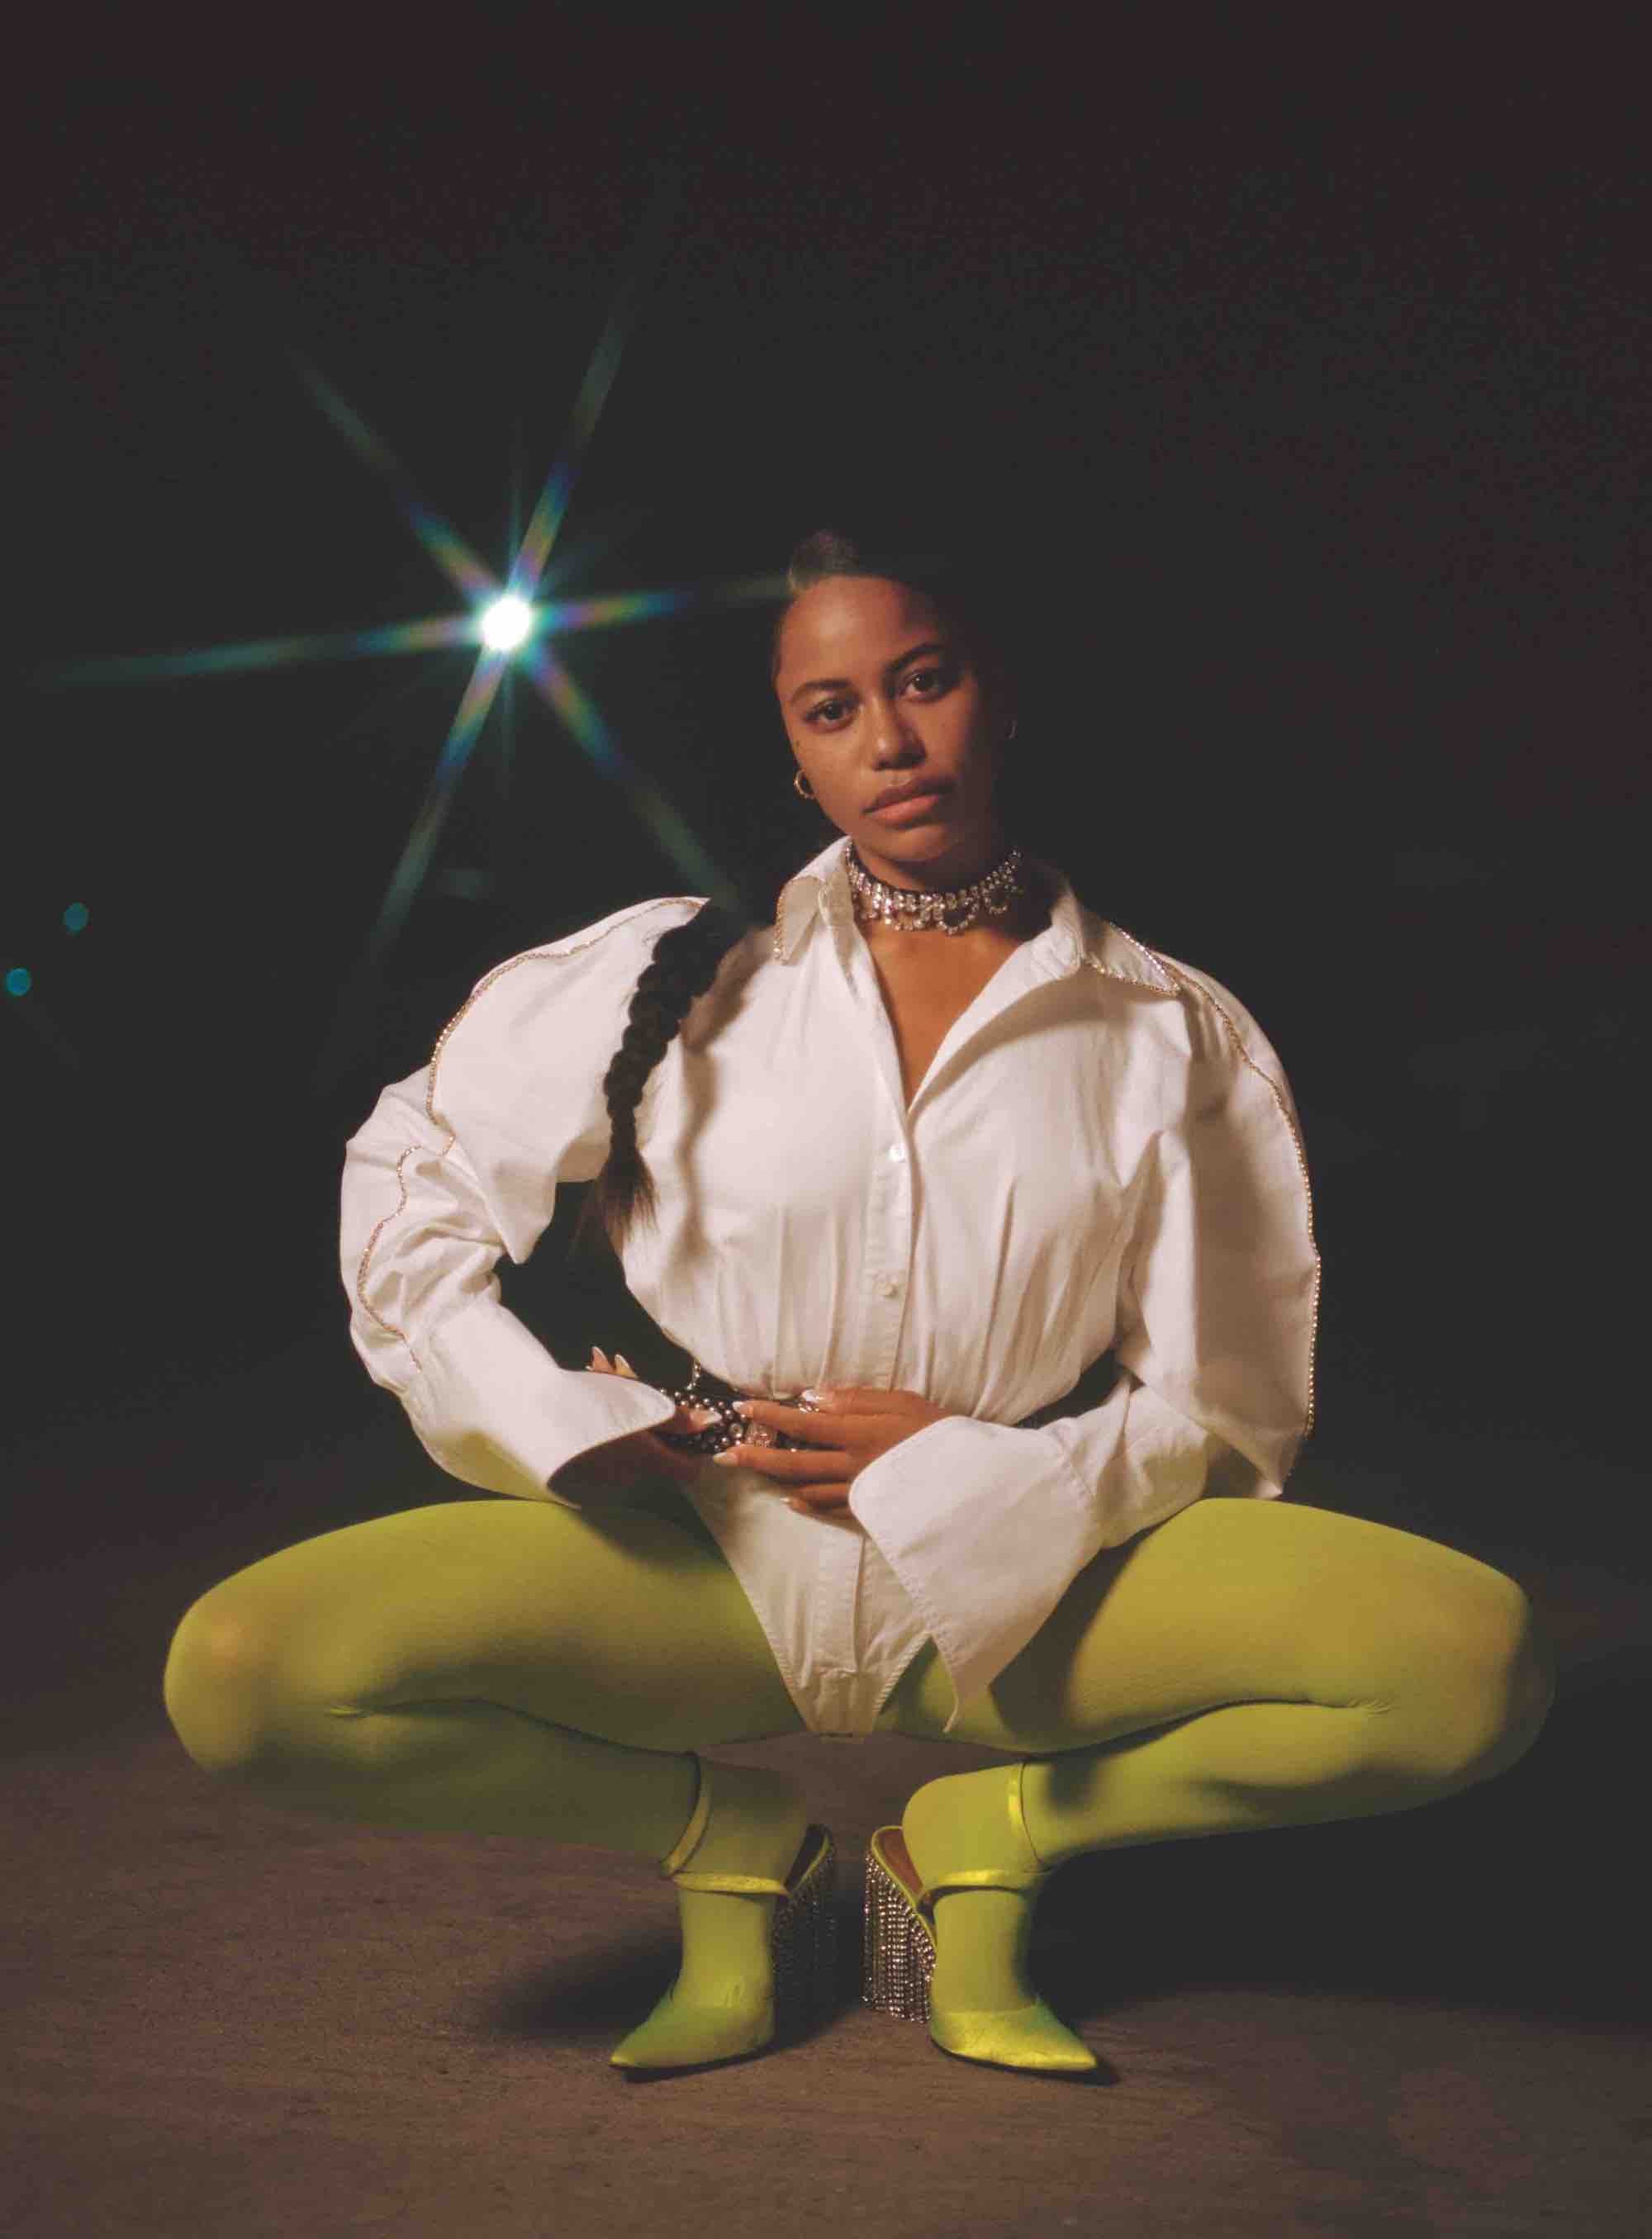 Zola actress Taylour Paige in the Winter issue of Wonderland green leggings